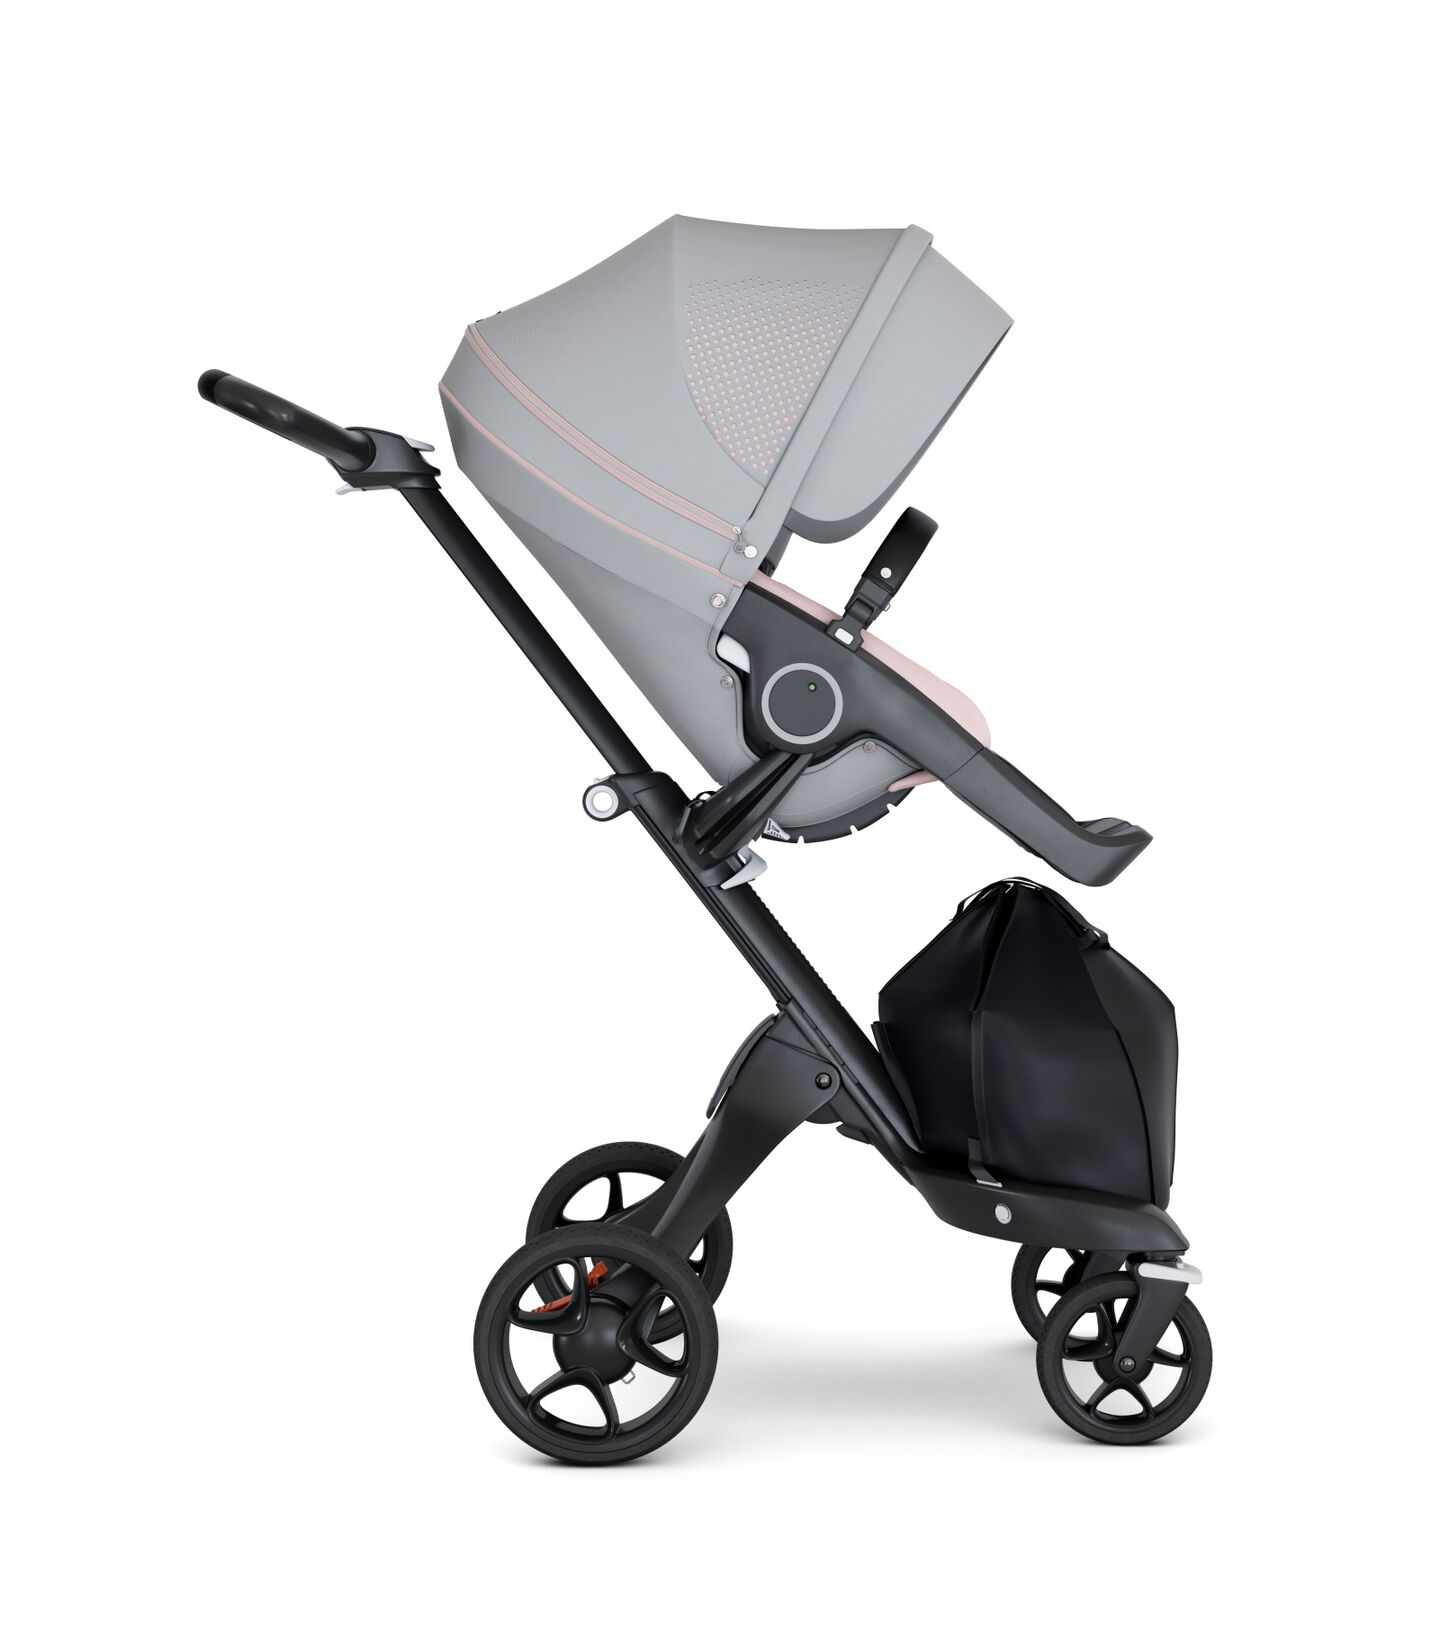 Stokke® Xplory® wtih Black Chassis and Leatherette Black handle. Stokke® Stroller Seat Seat Athleisure Pink. Forward facing.